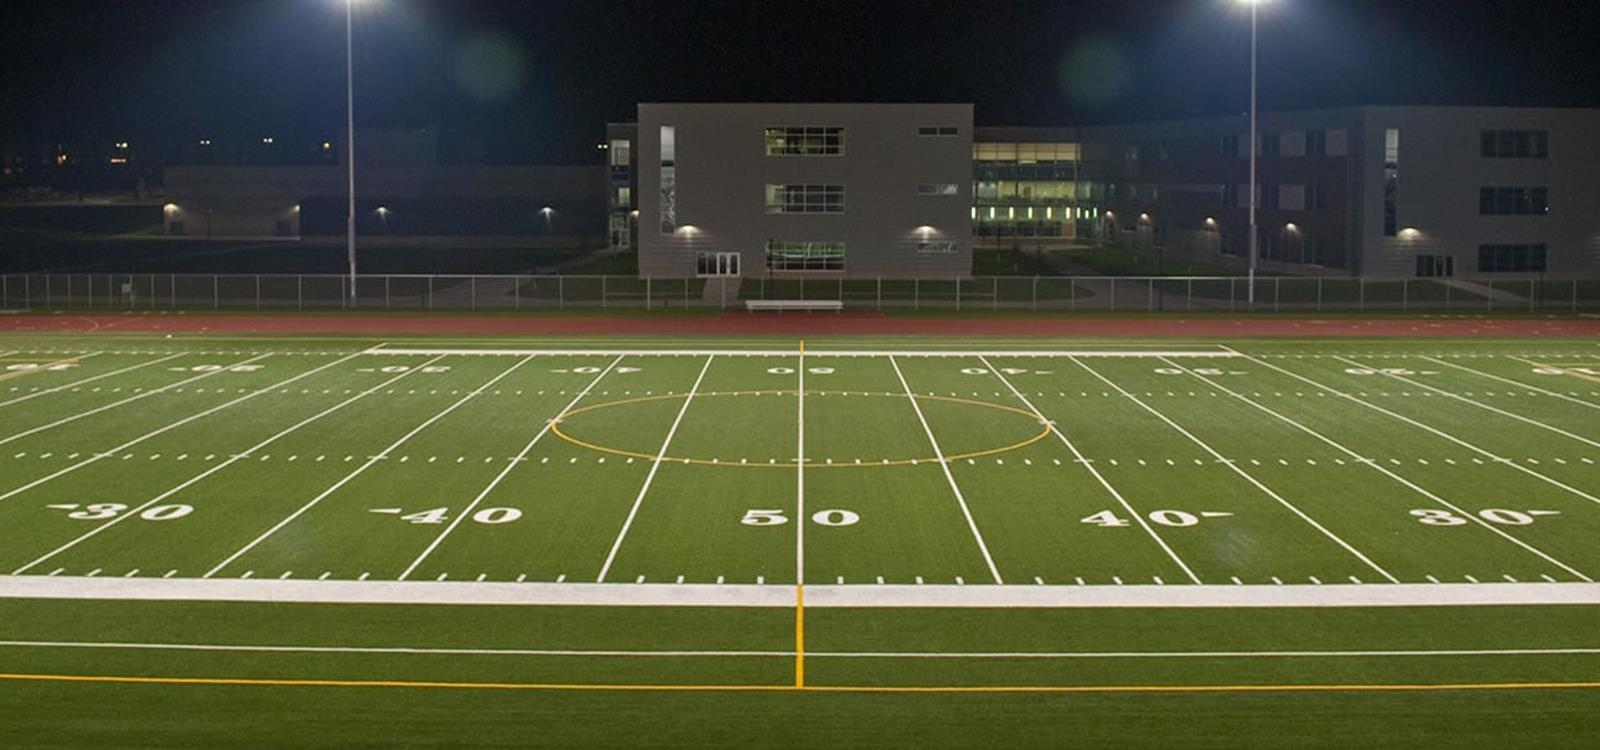 Bismarck Public Schools Athletic Complex Football Field 2